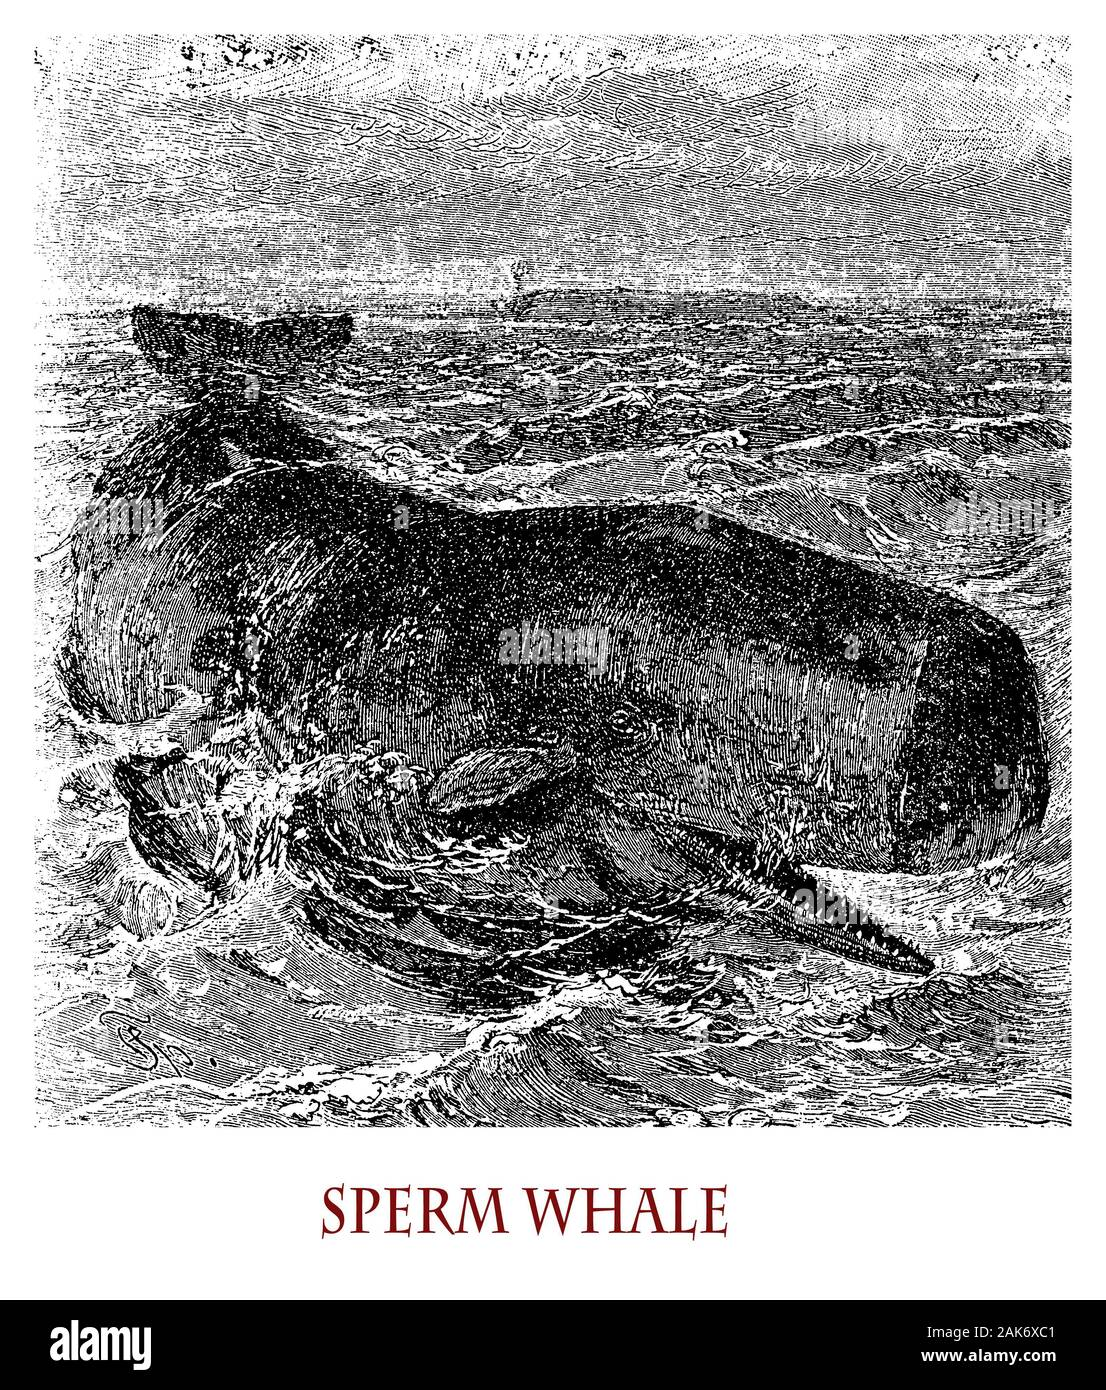 Sperm Whale Oil Spermaceti Oil High Resolution Stock Photography And Images Alamy